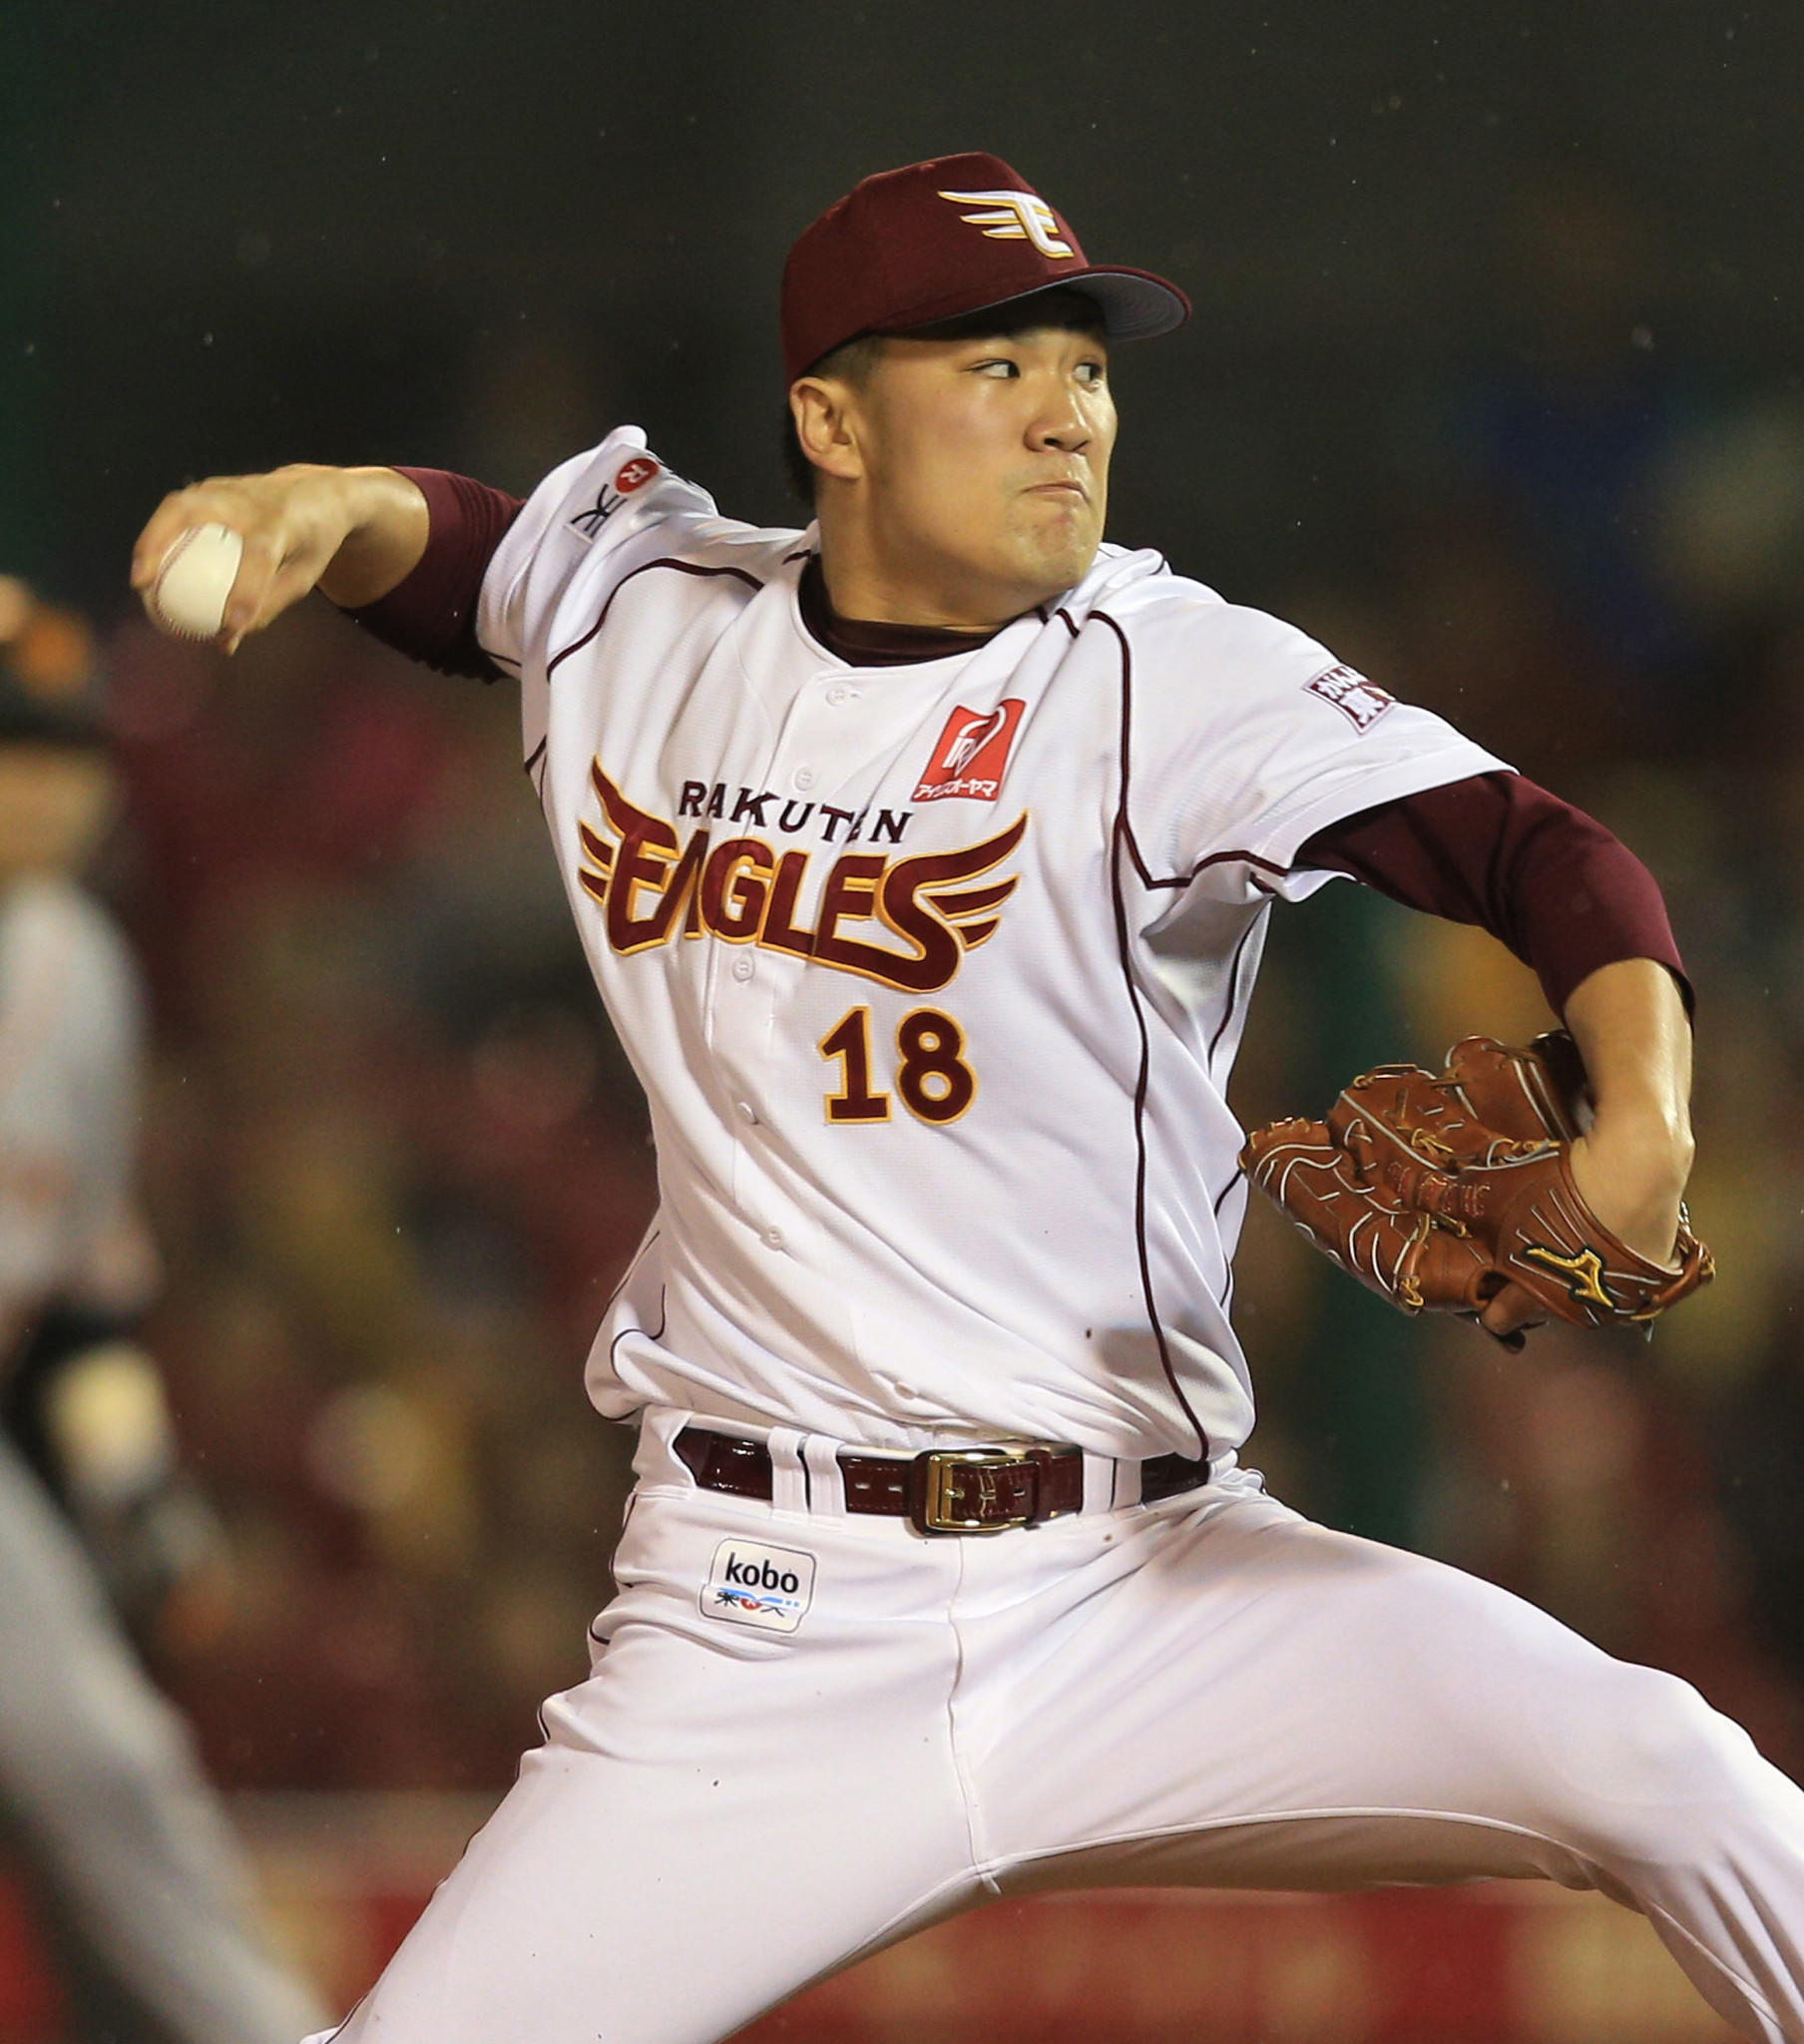 Rakuten Eagles pitcher Masahiro Tanaka is the object of an MLB bidding war.